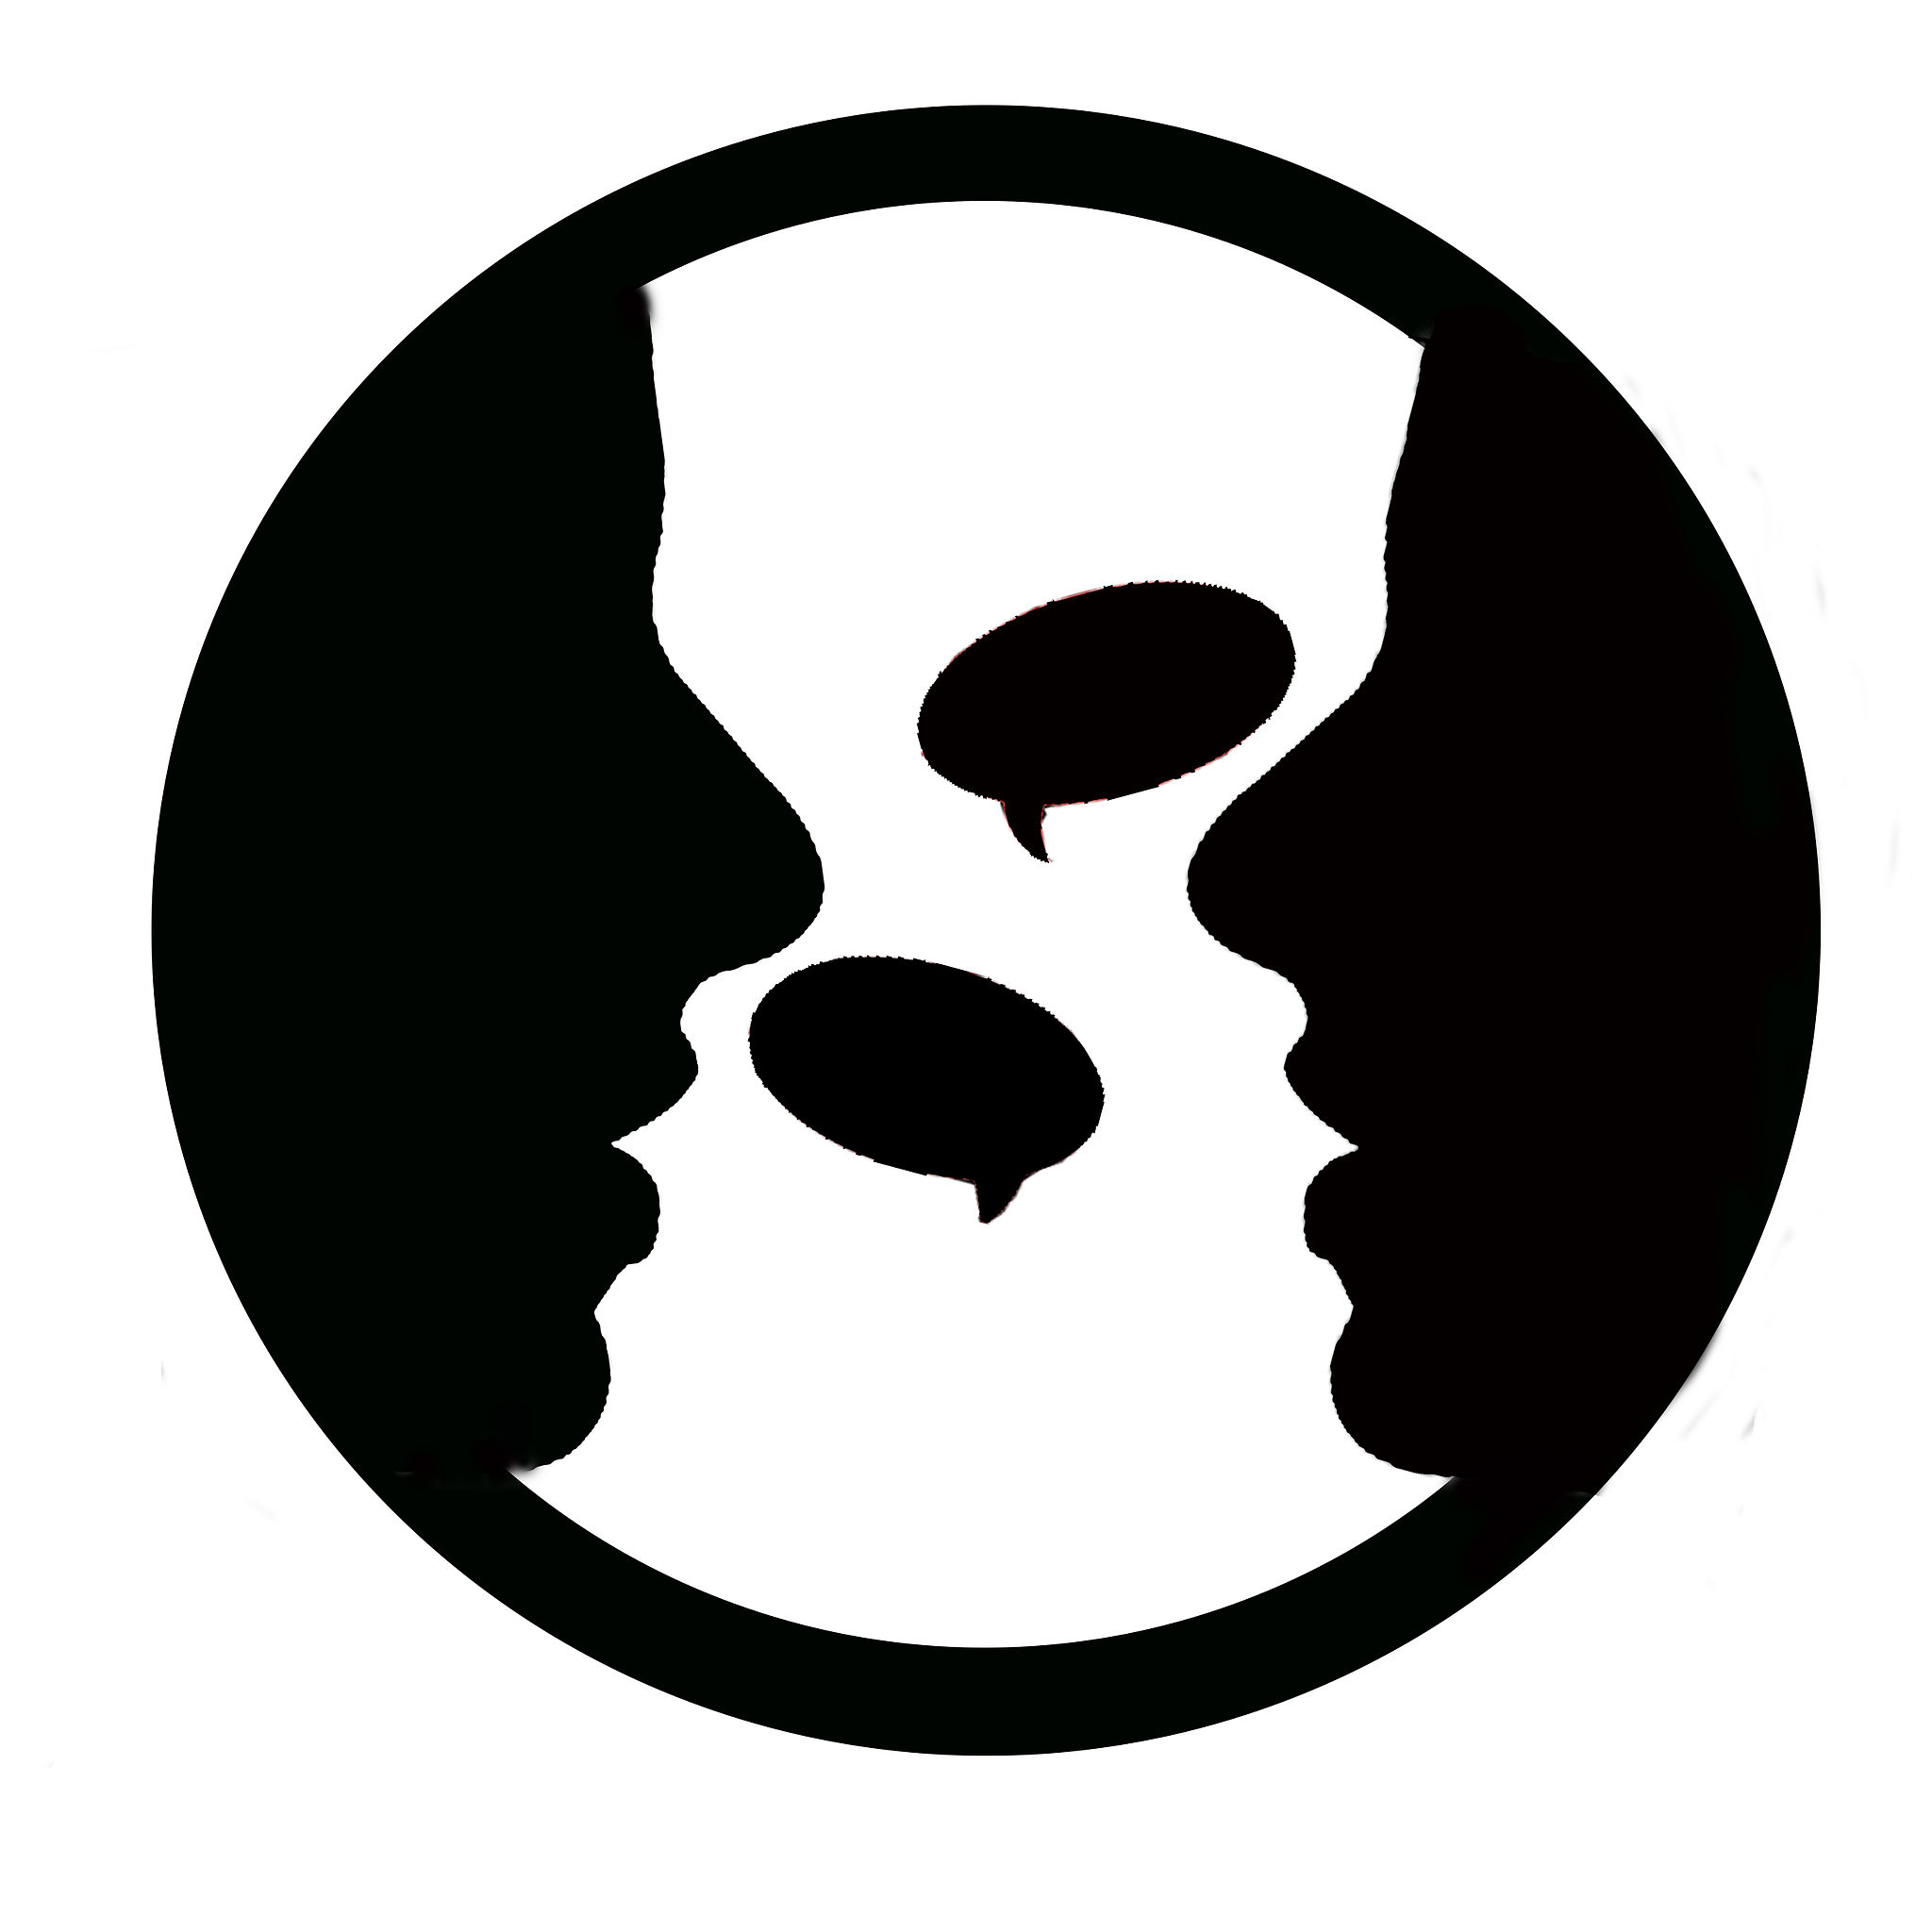 Two people talking logo